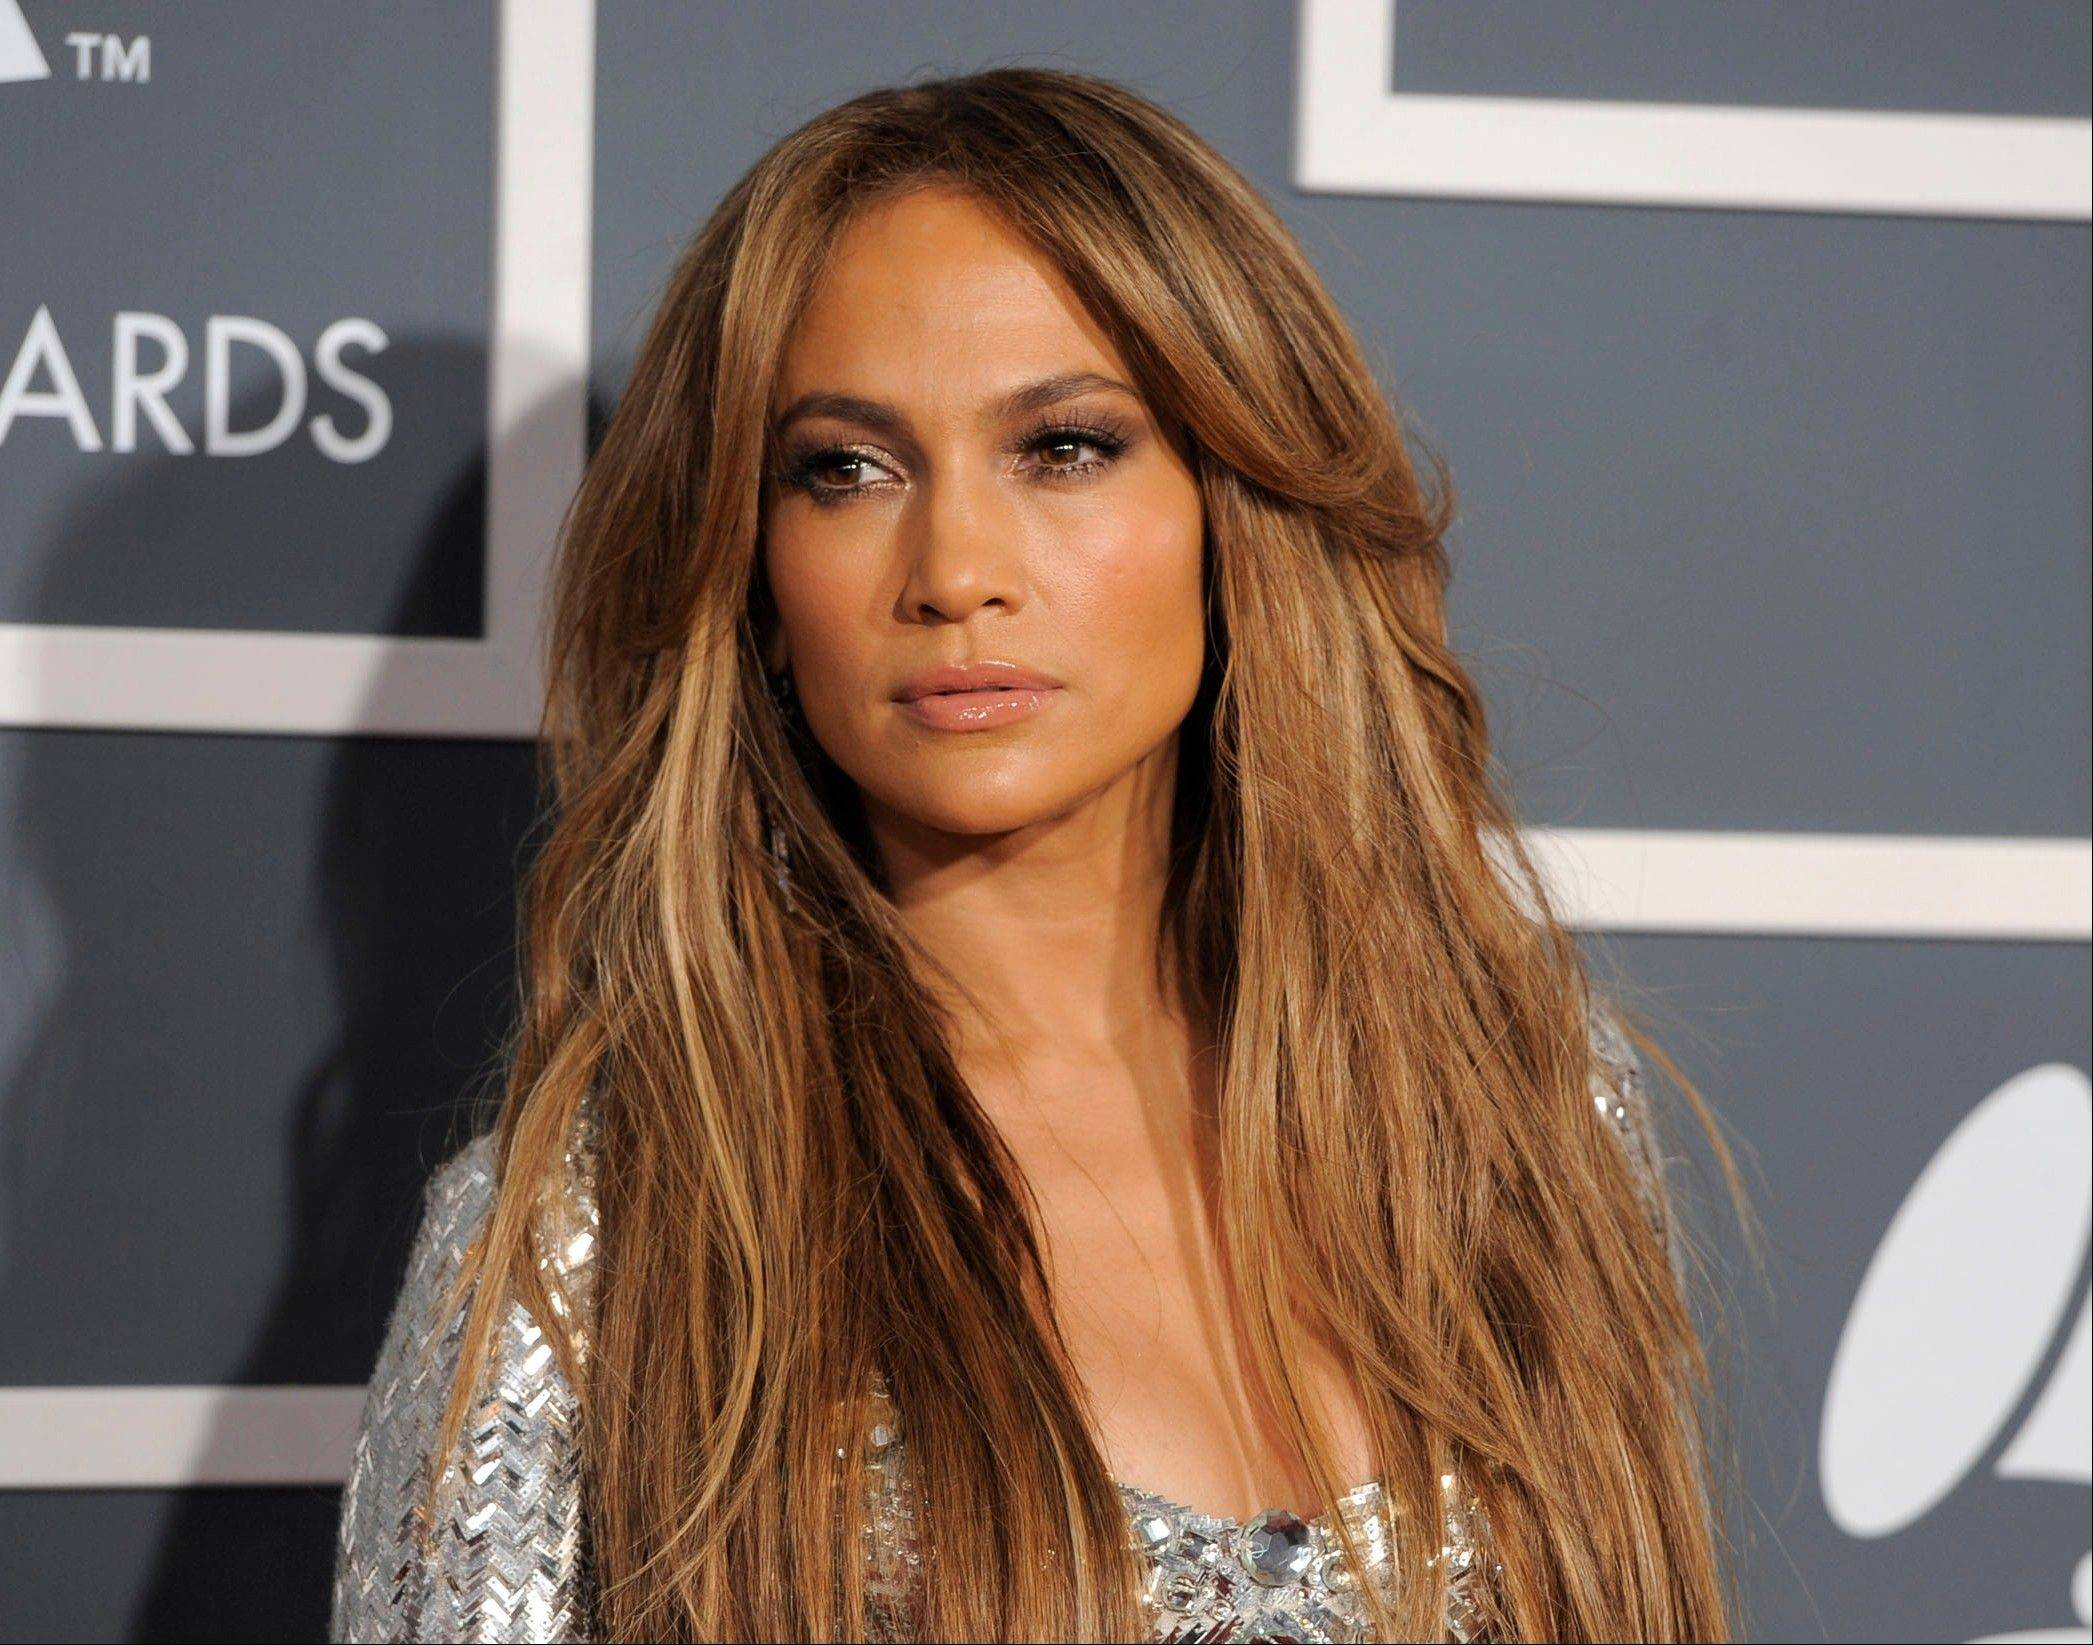 Police say an intruder had been living for a week on Jennifer Lopez's property in the Hamptons while she was away.